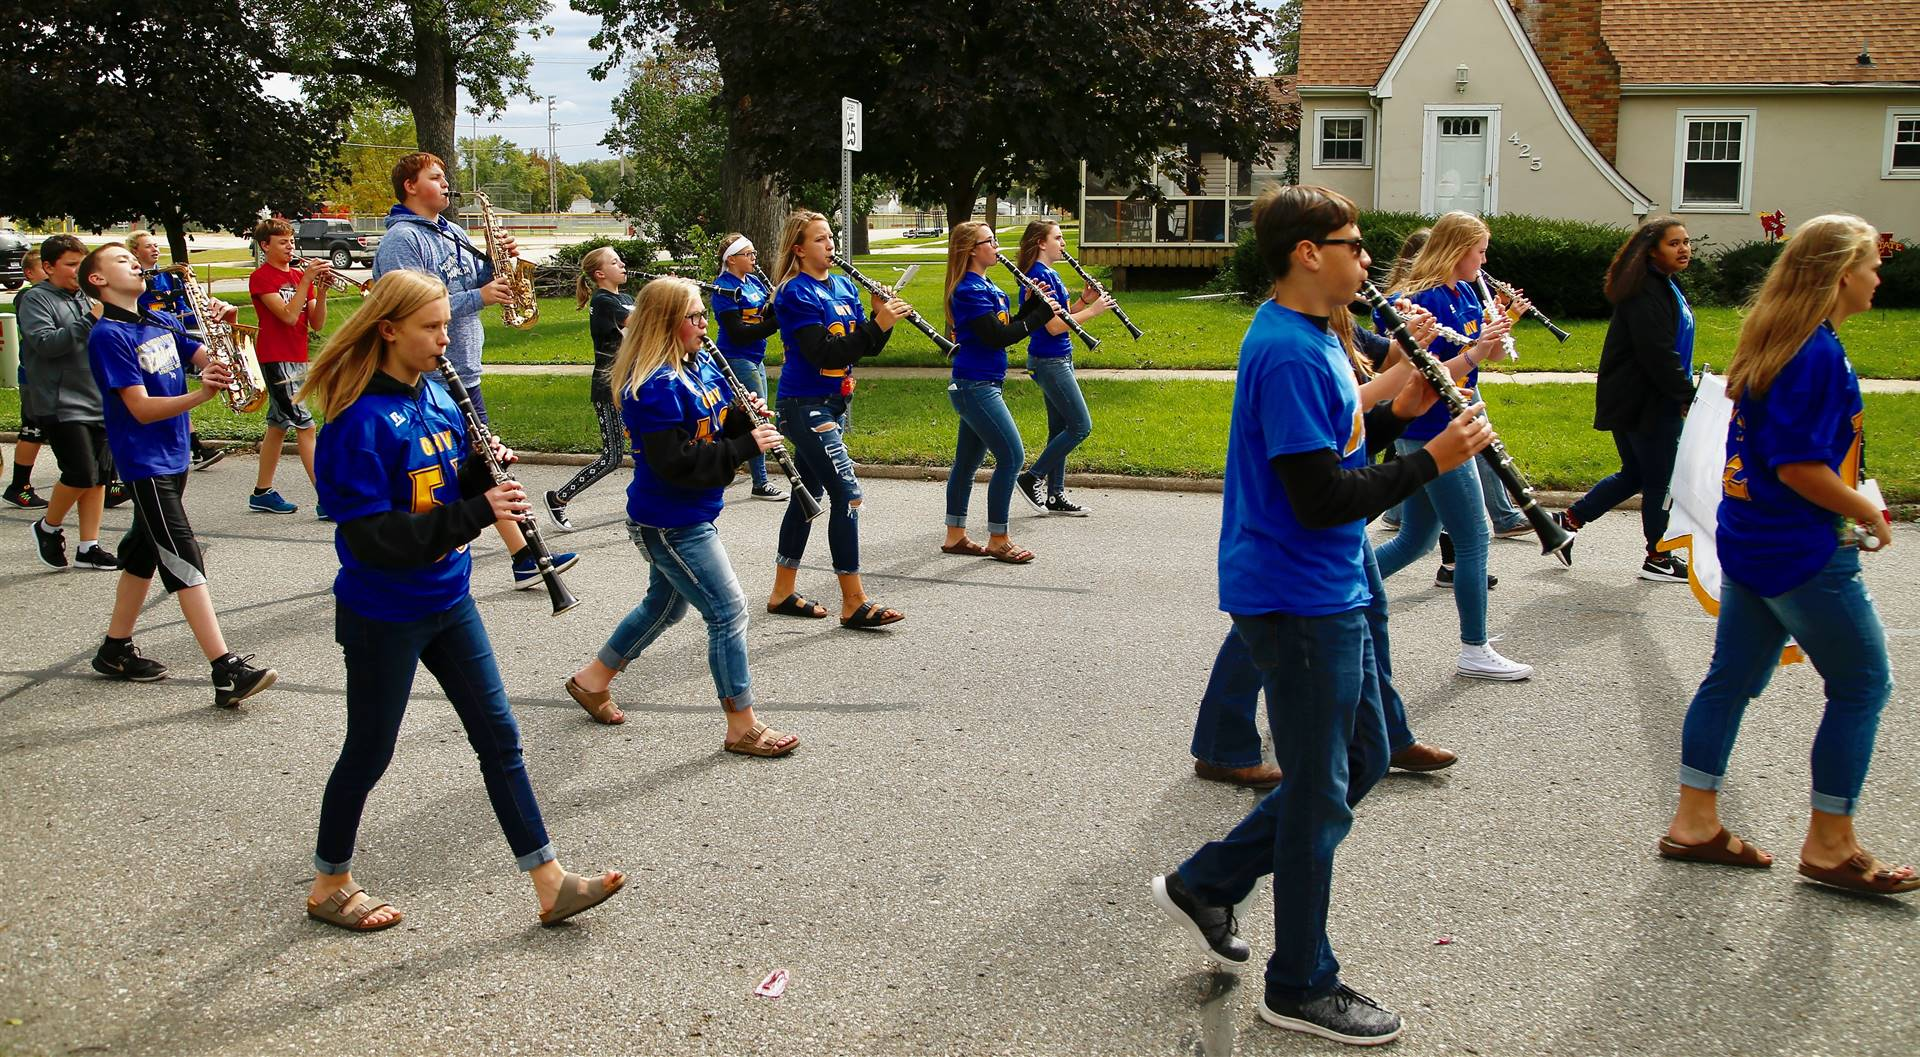 junior high students in a marching band in a parade